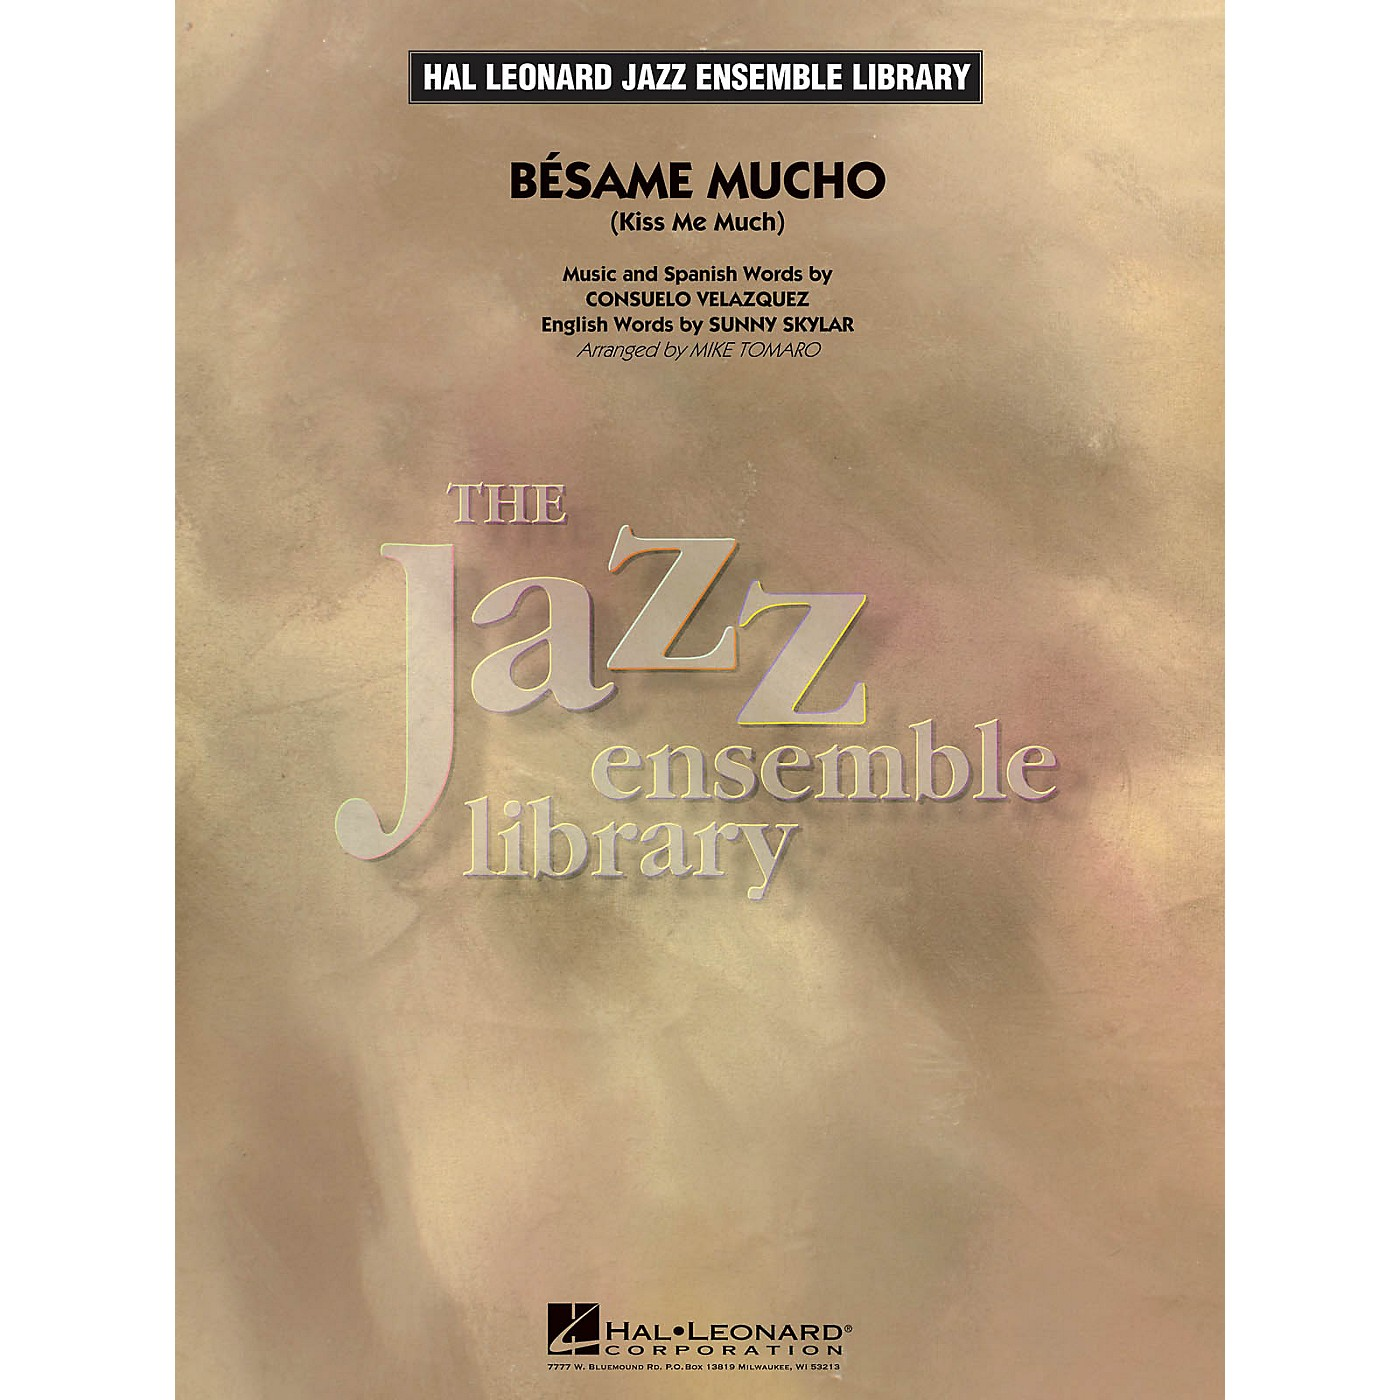 Hal Leonard Bésame Mucho (Kiss Me Much) Jazz Band Level 4 Arranged by Mike Tomaro thumbnail